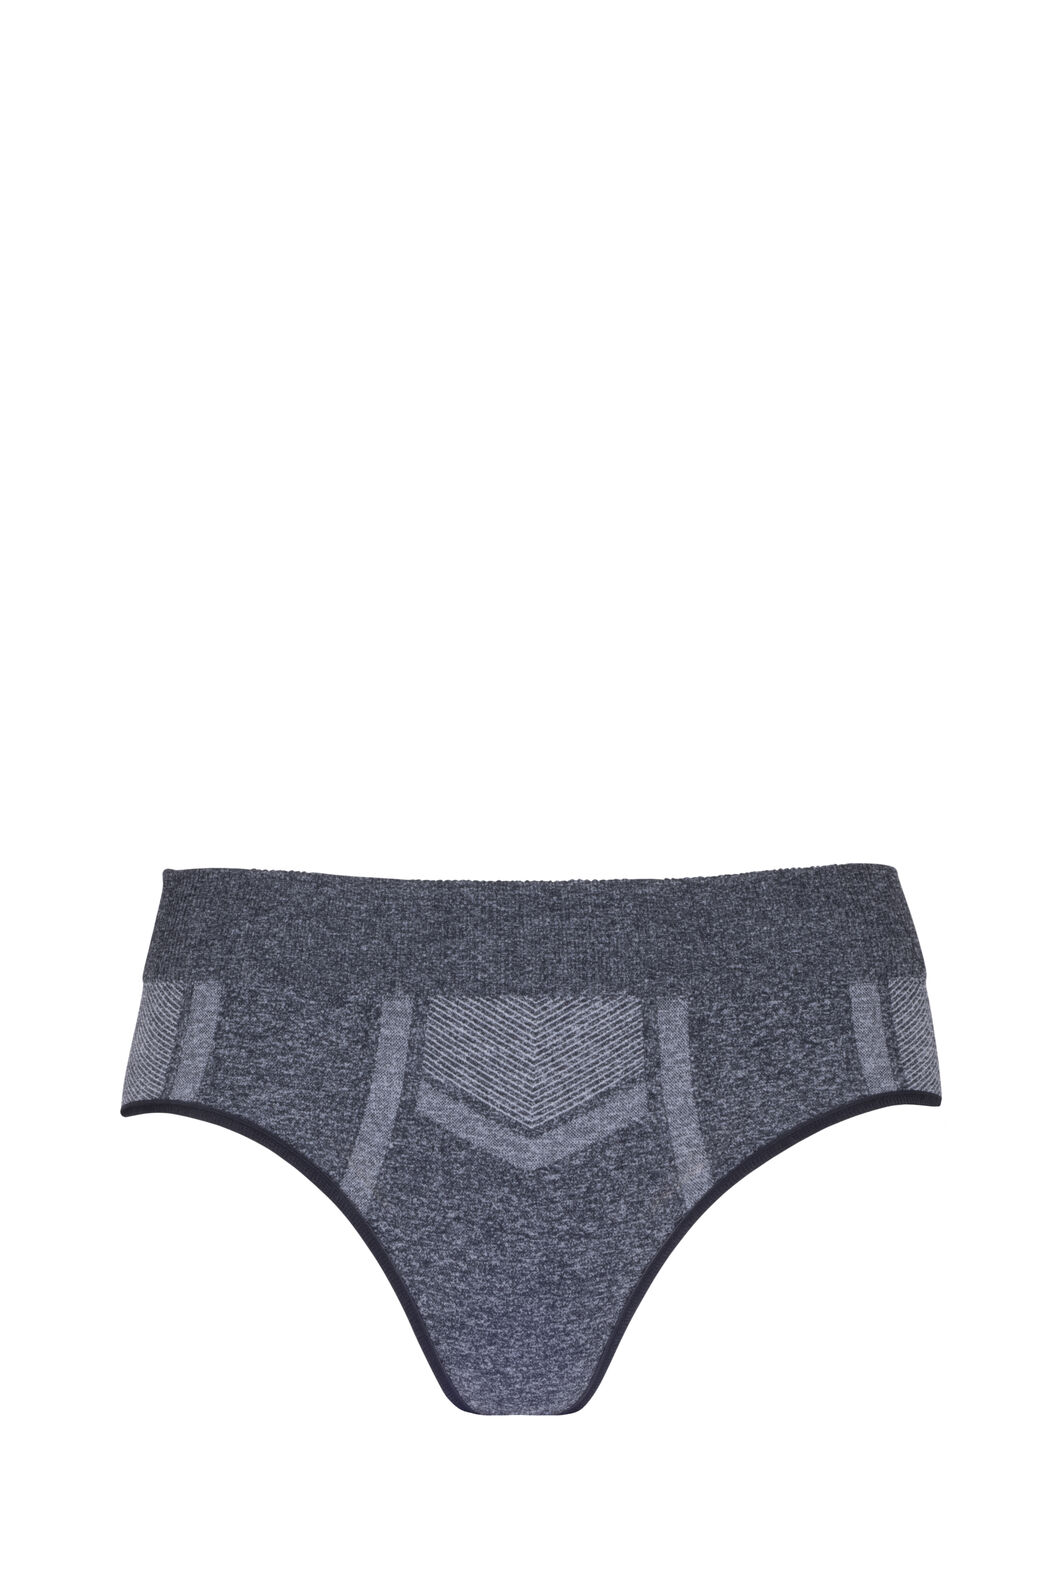 Macpac Limitless Brief - Women's, Charcoal Marle, hi-res